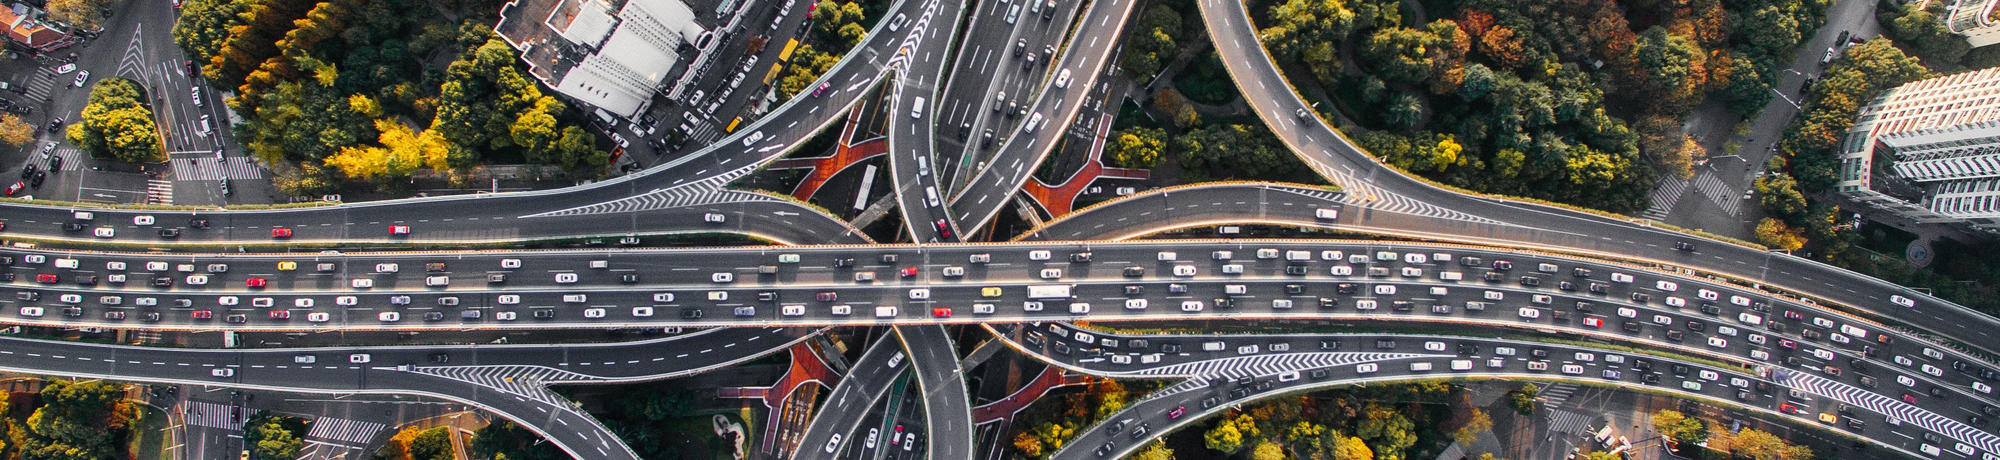 cropped_shanghai_traffic_from_unsplash_for_banner_on_research_detail_page